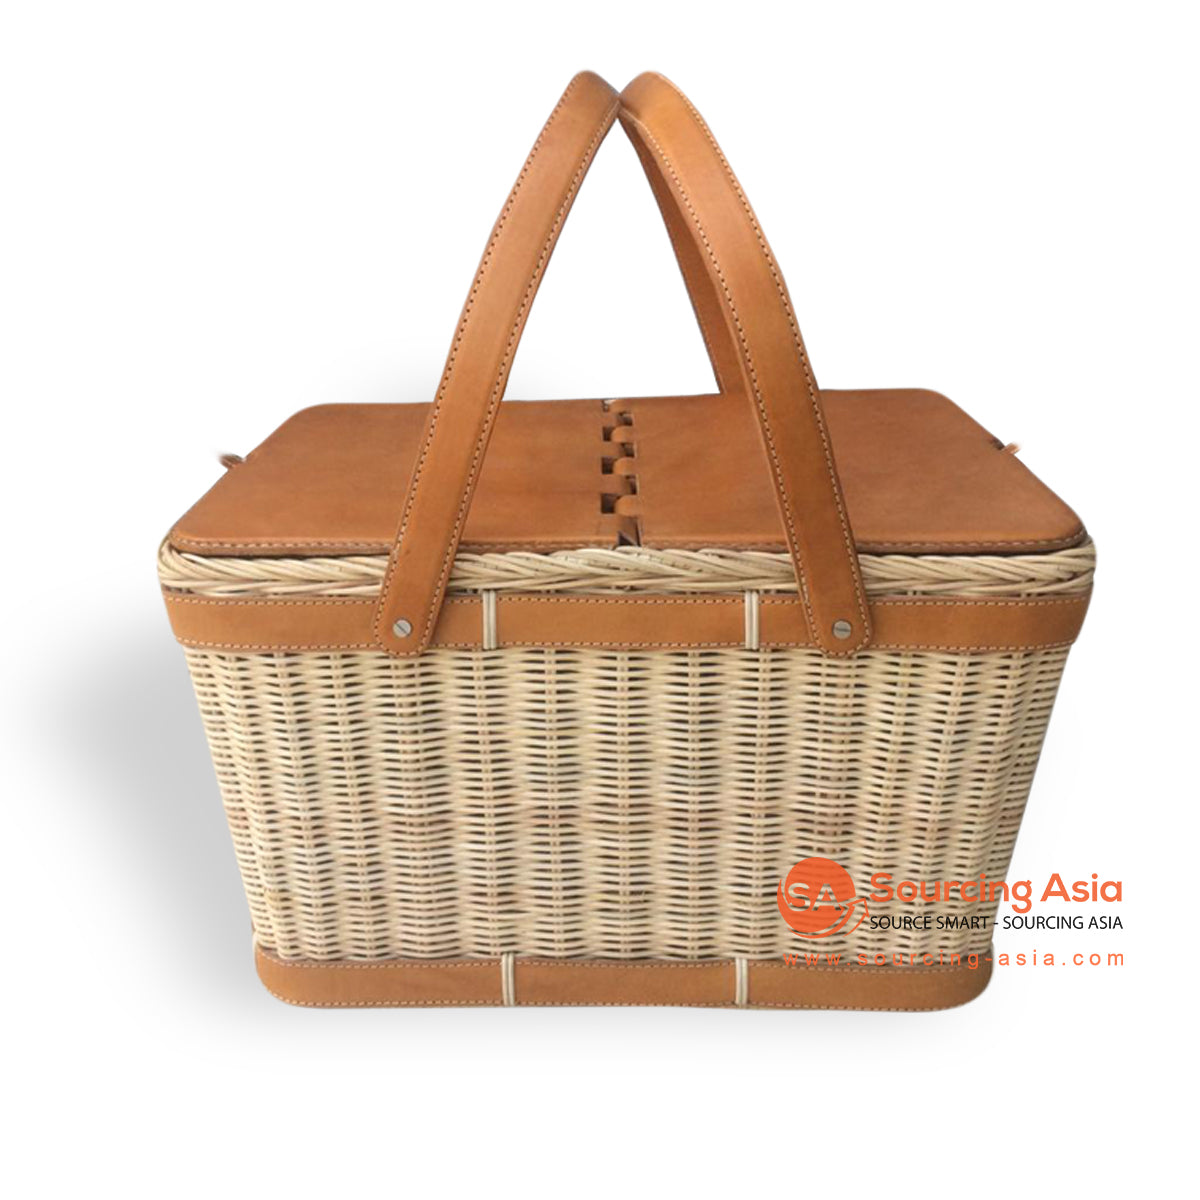 MJR003-1 LEATHER AND RATTAN PICNIC BASKET